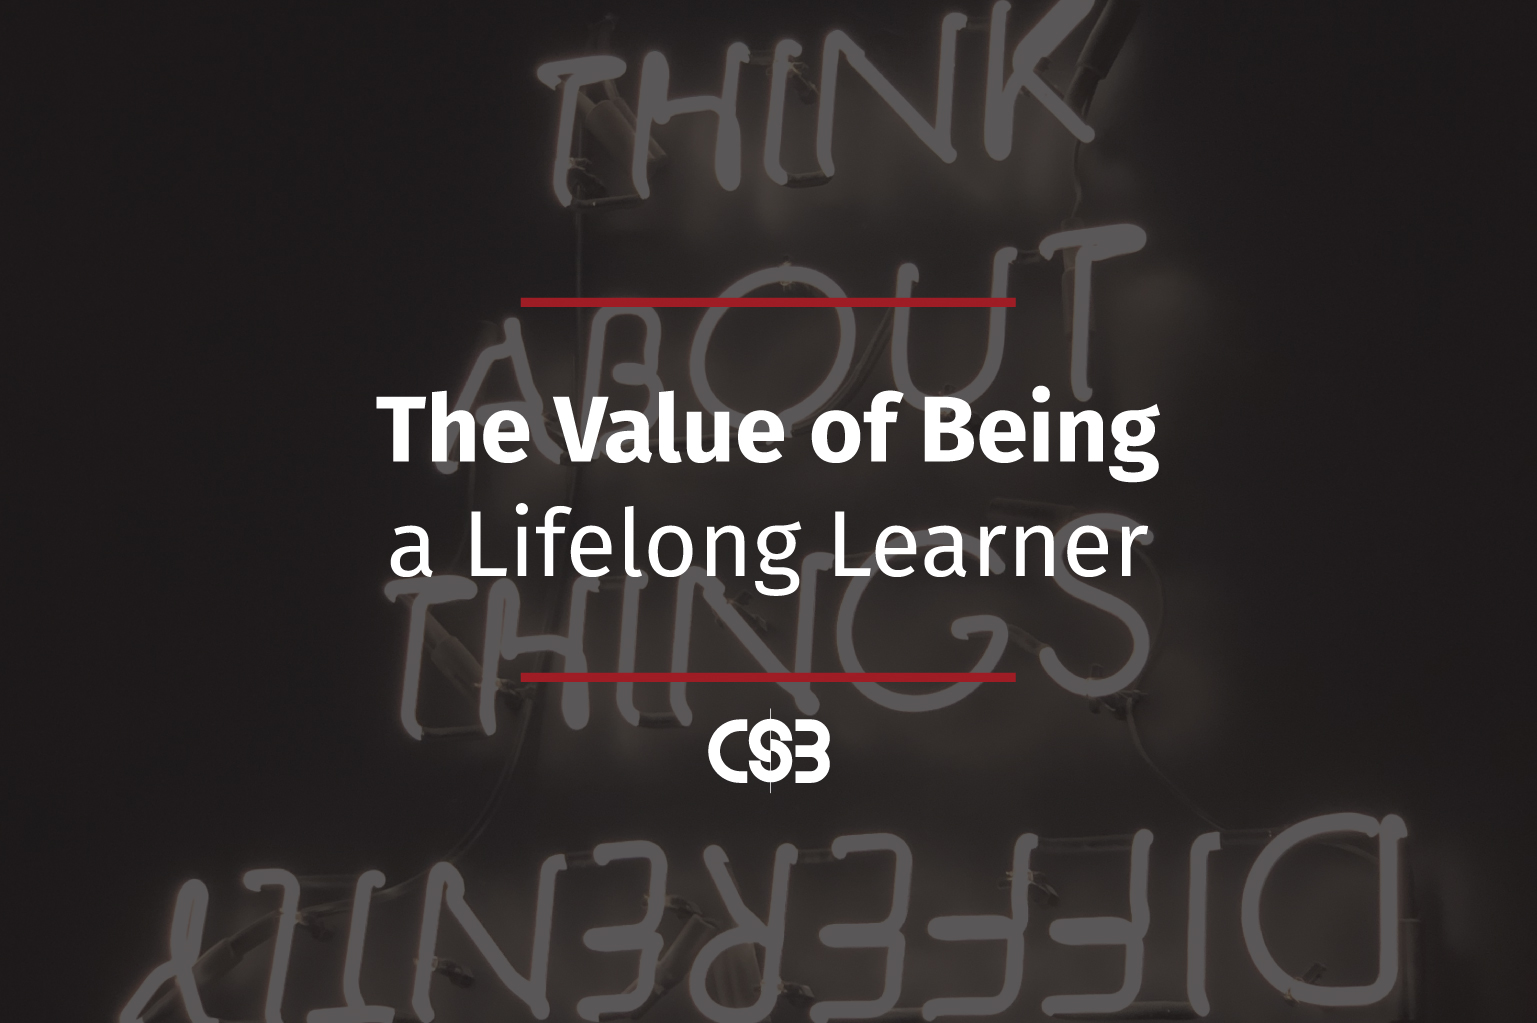 The-Value=of-Being-a-Lifelong-Learner